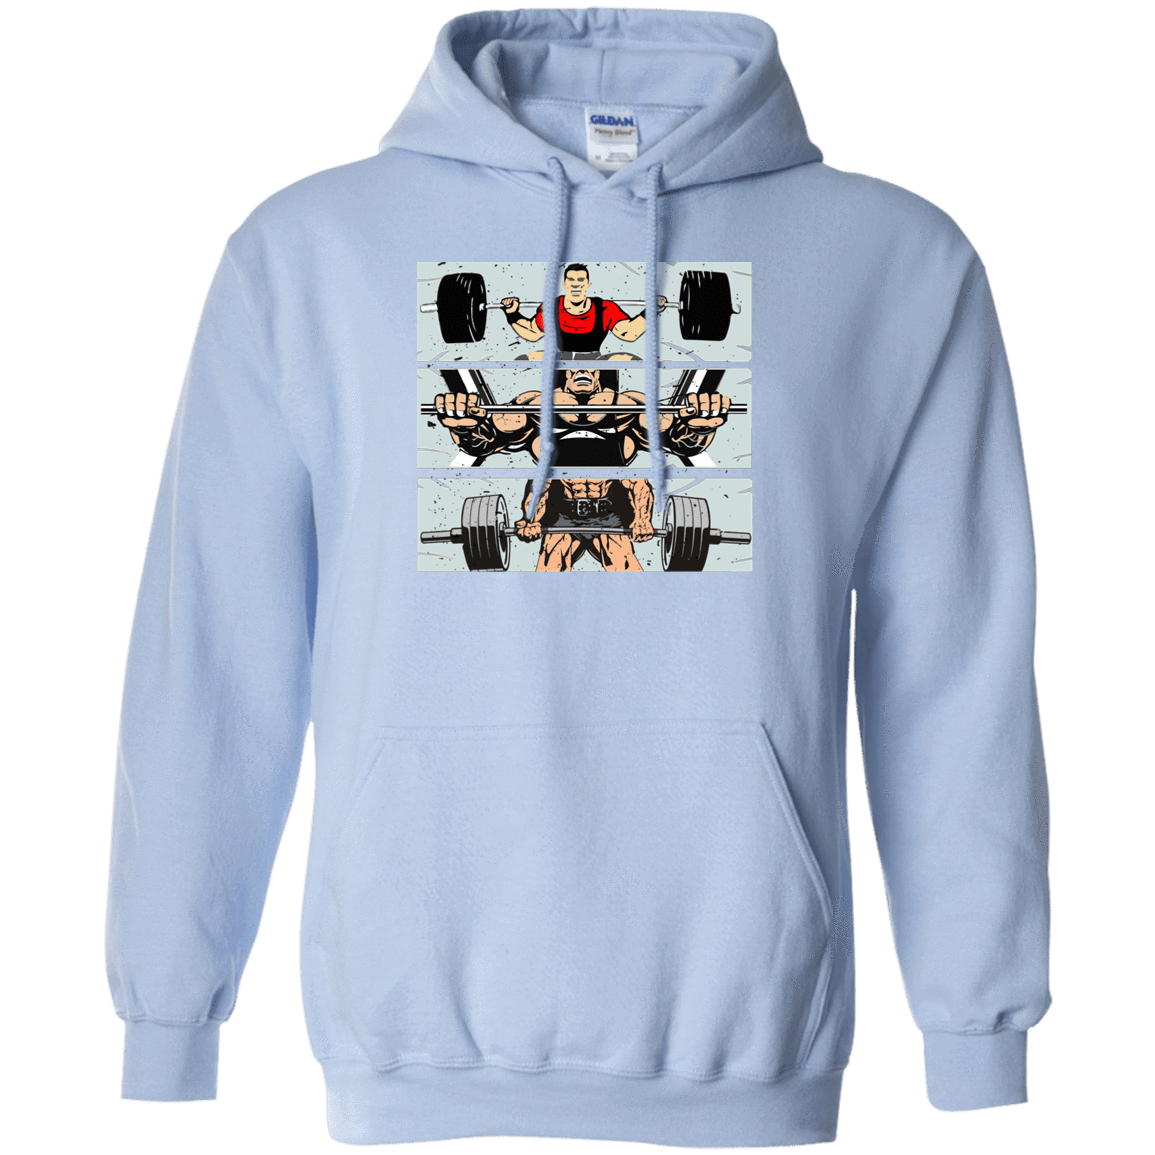 Sweatshirts Light Blue / S Big Three Hoodie